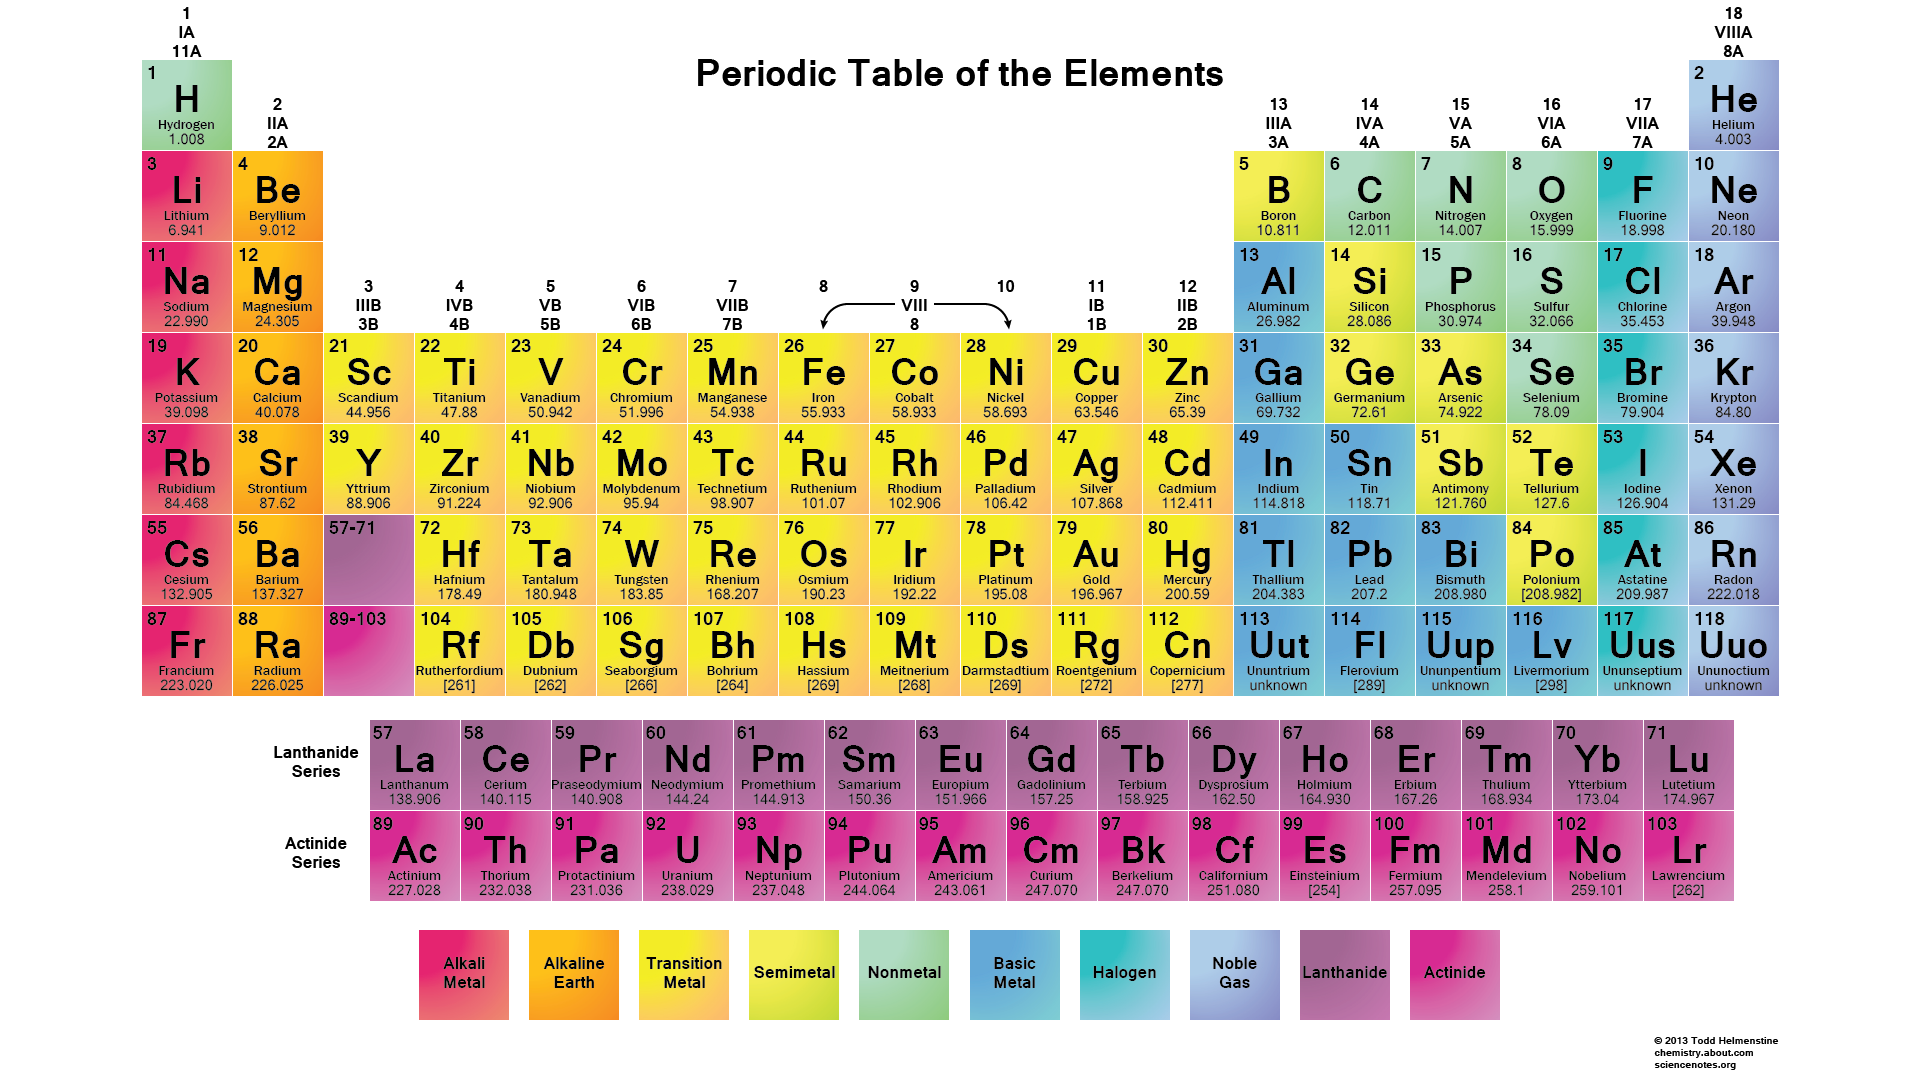 Periodic table comers chemistry classroom a table of the chemical elements arranged in order of atomic number usually in rows so that elements with similar atomic structure and hence similar urtaz